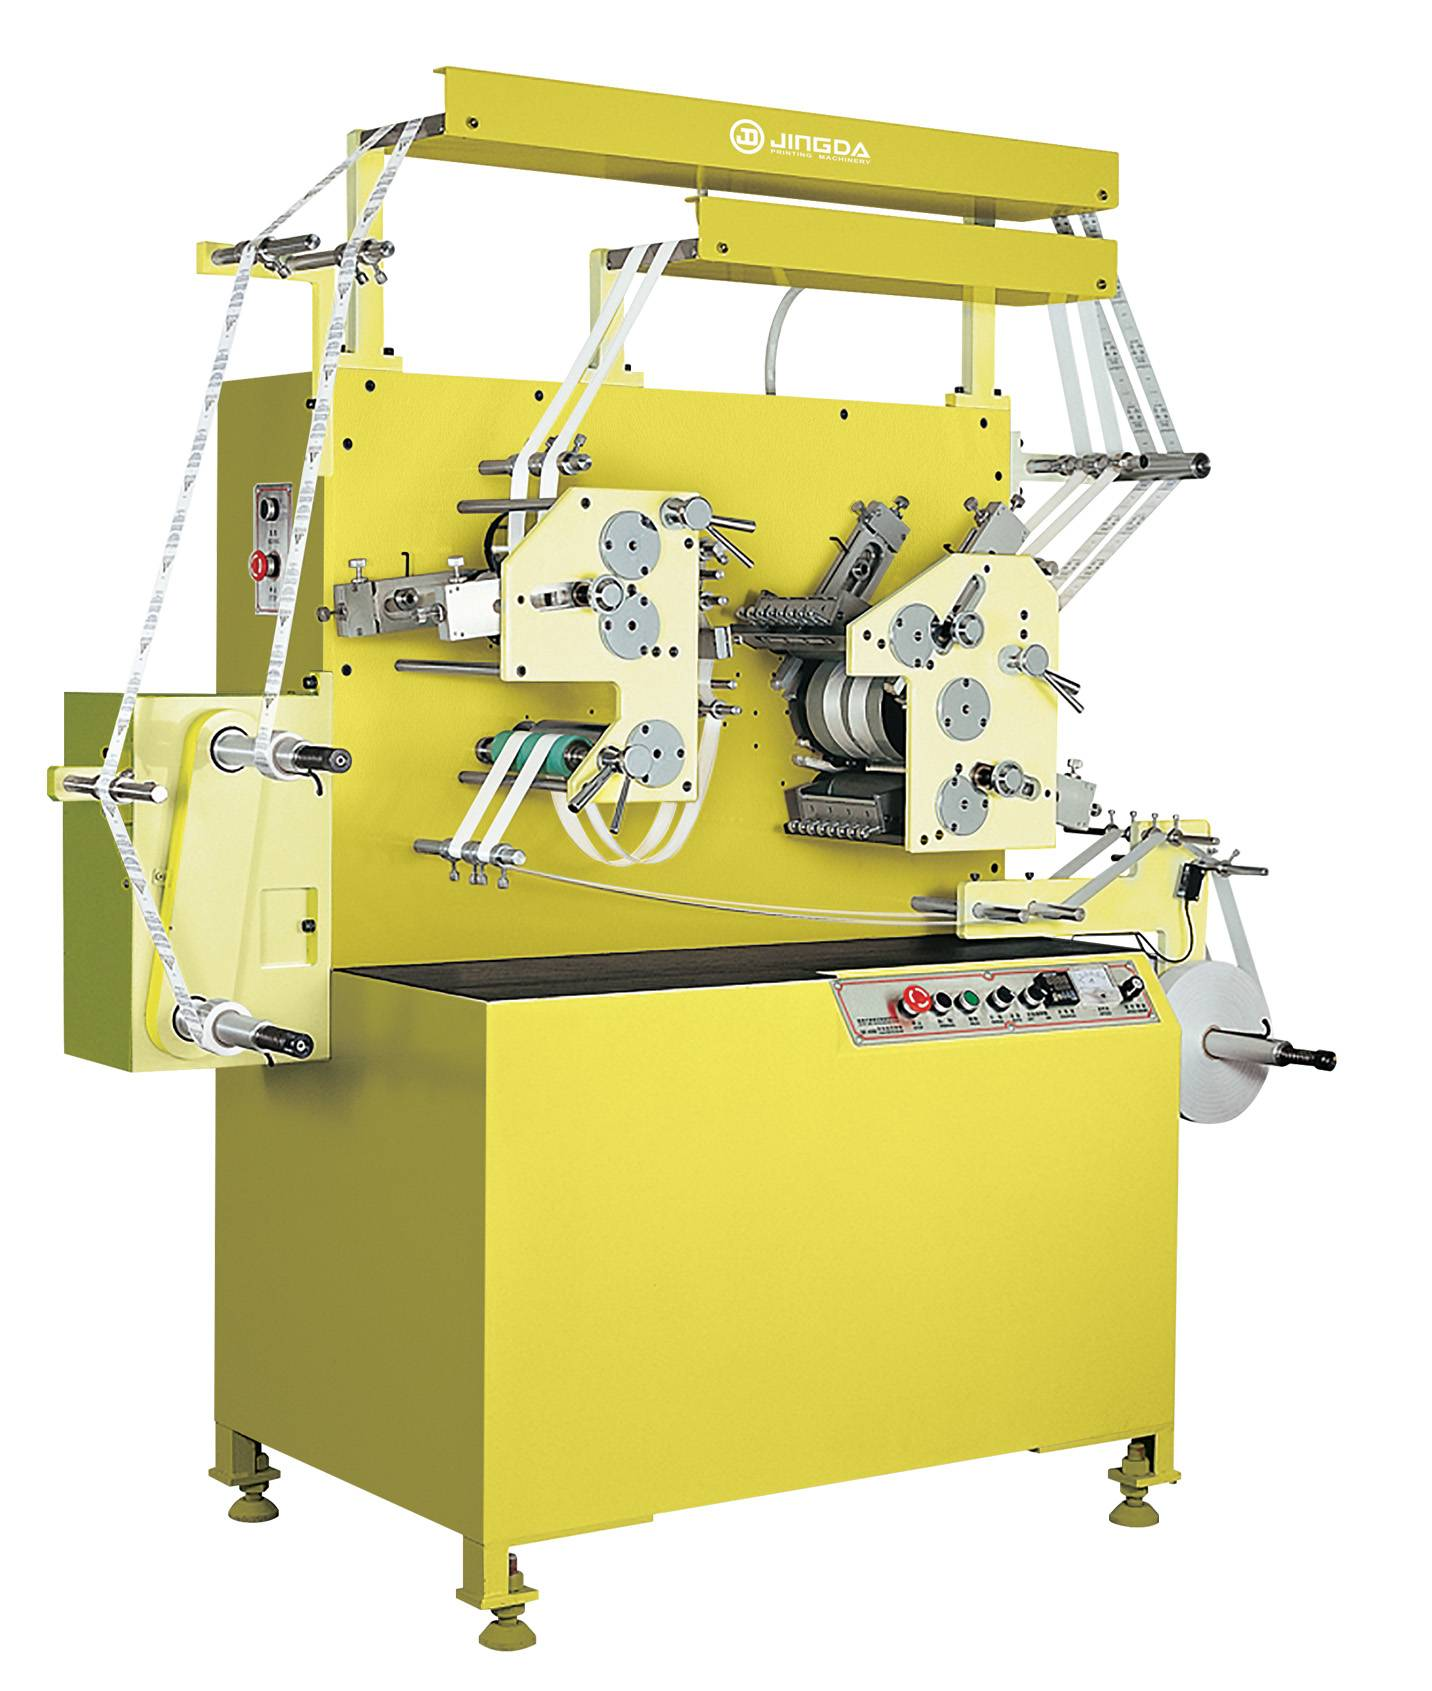 Satin Ribbon Label Printing Machine/Flexo Fabric Label Printing Machine (2Colors+1Color) JR-1521